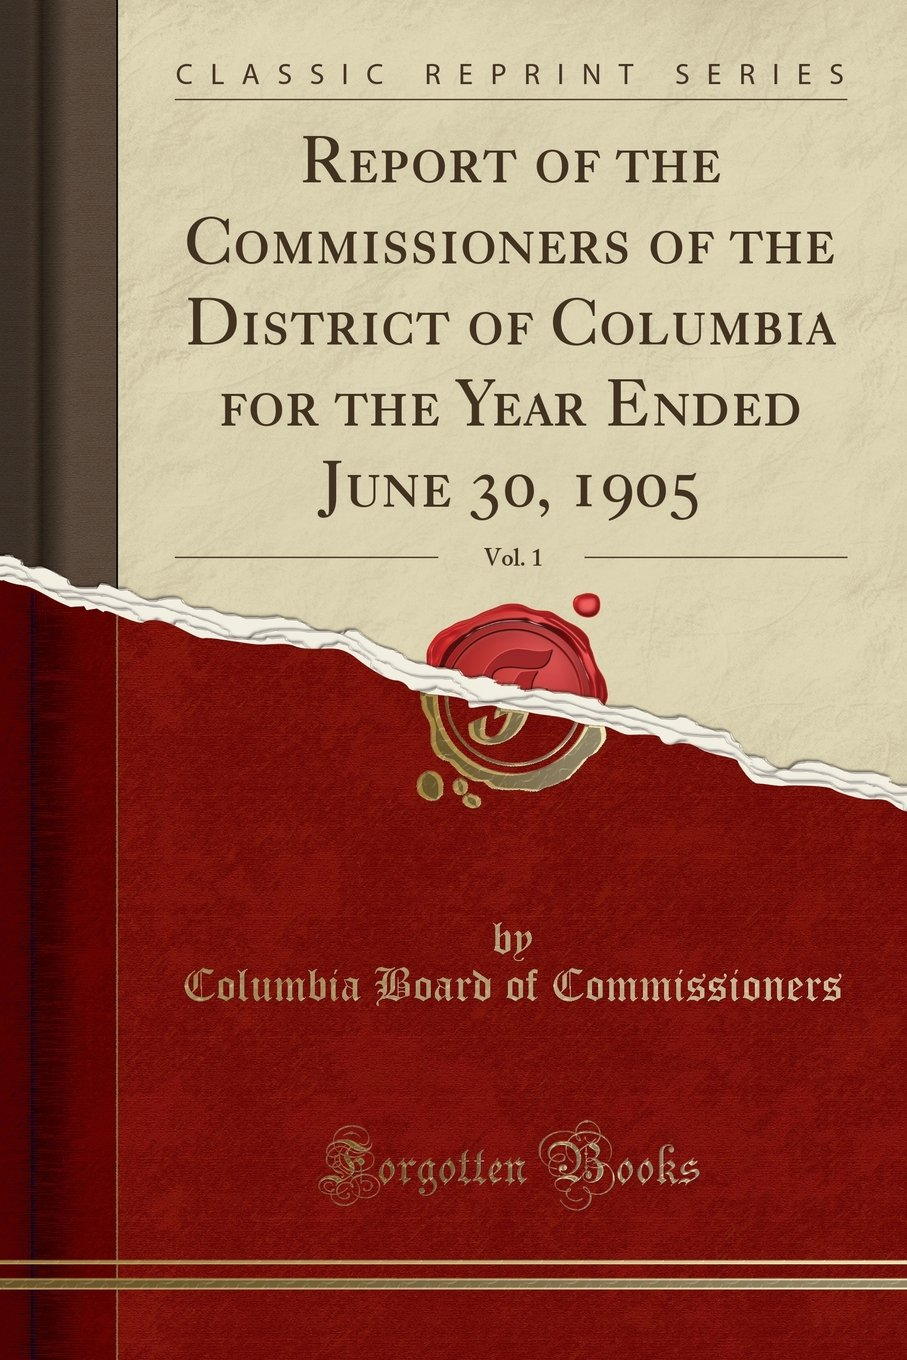 Download Report of the Commissioners of the District of Columbia for the Year Ended June 30, 1905, Vol. 1 (Classic Reprint) pdf